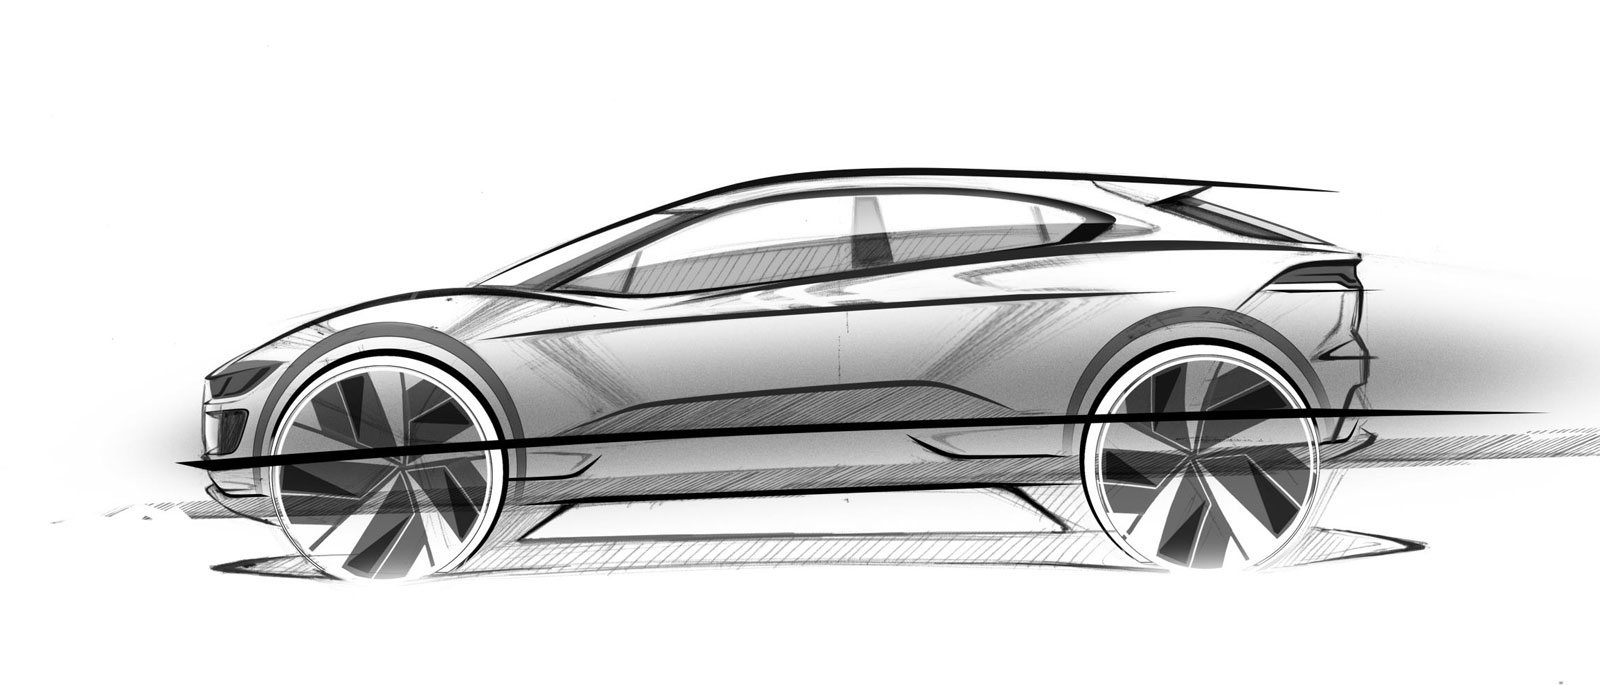 Jaguar I Pace Design Sketch ...